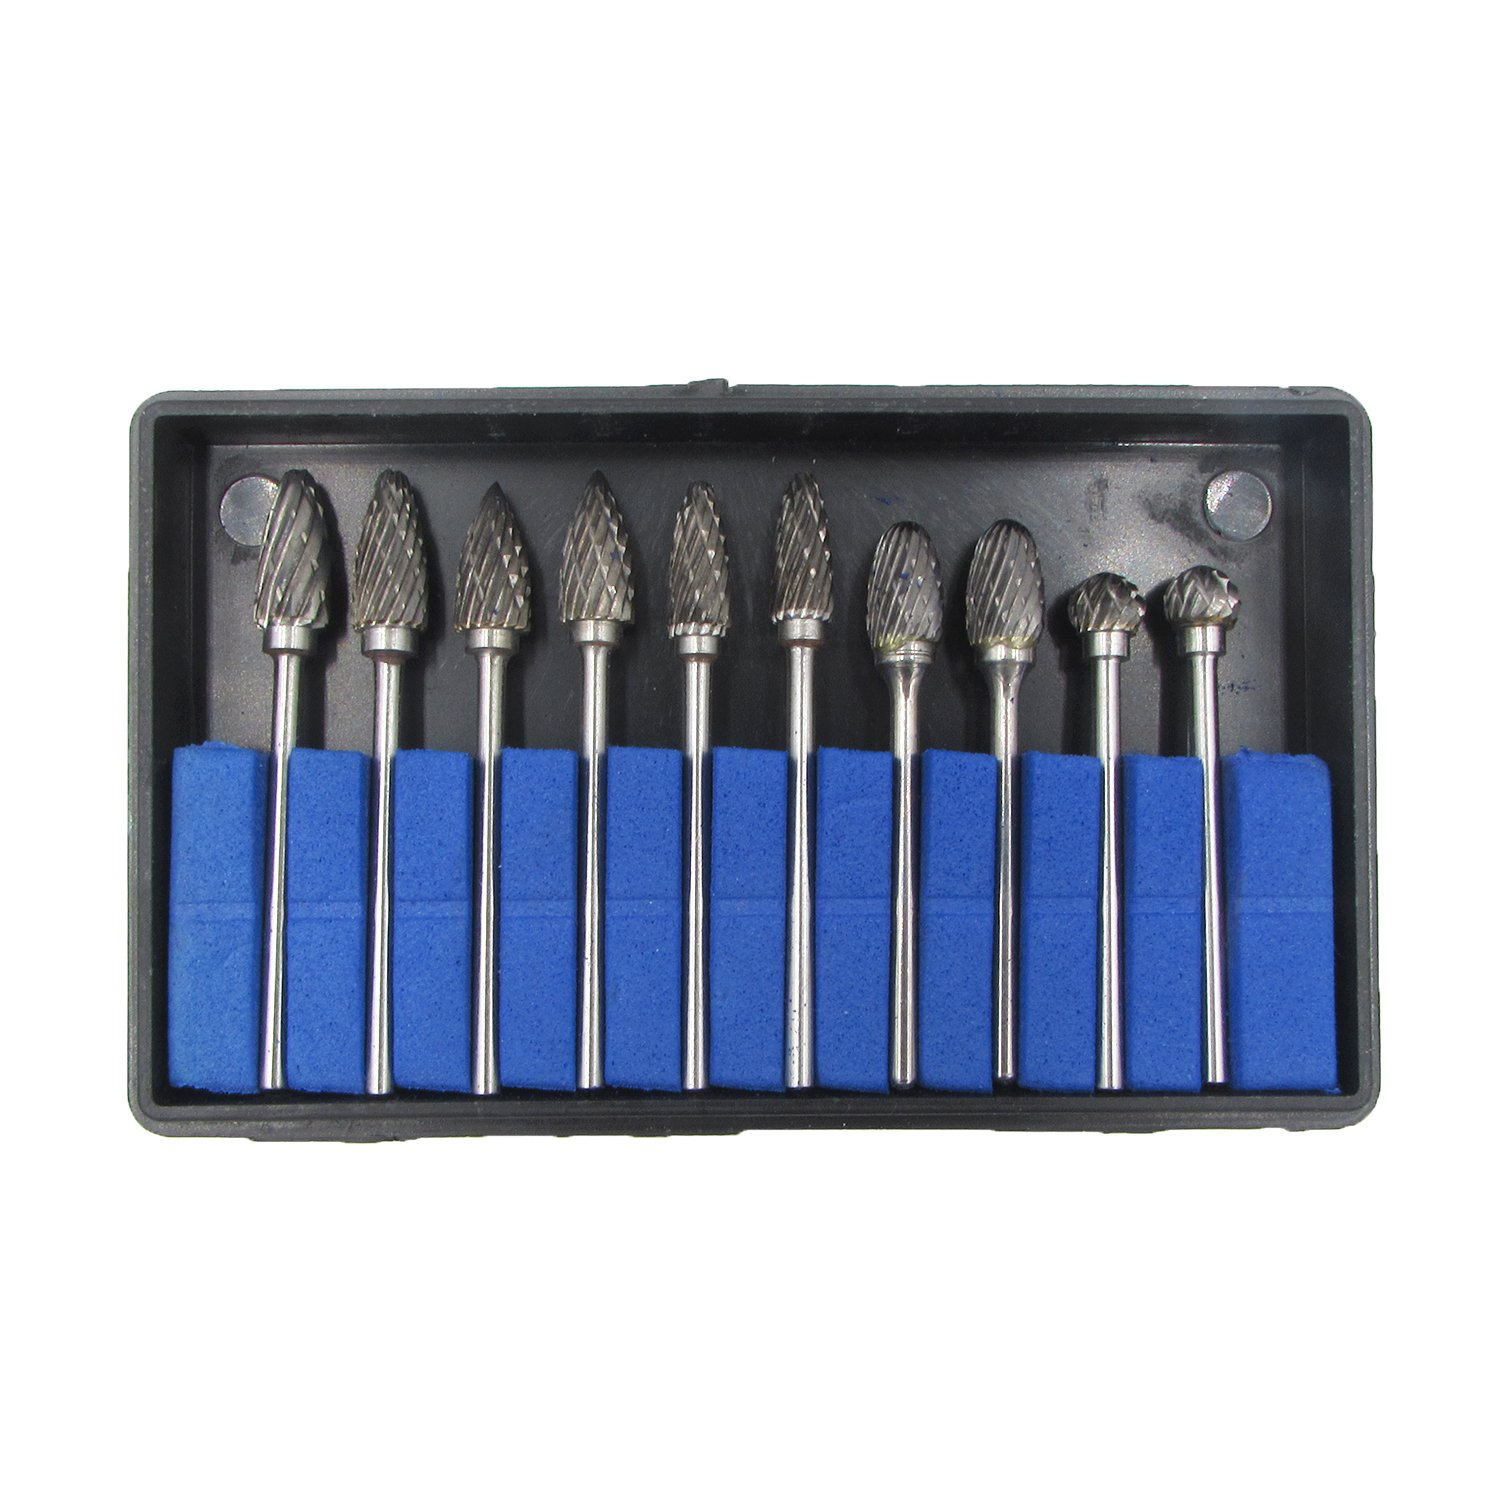 10 Pcs Tungsten Carbide Rotary Burr SET 1//10 Shank for Rotary Drill Die Grinder Carving Tool Set by Pwhite C060GX